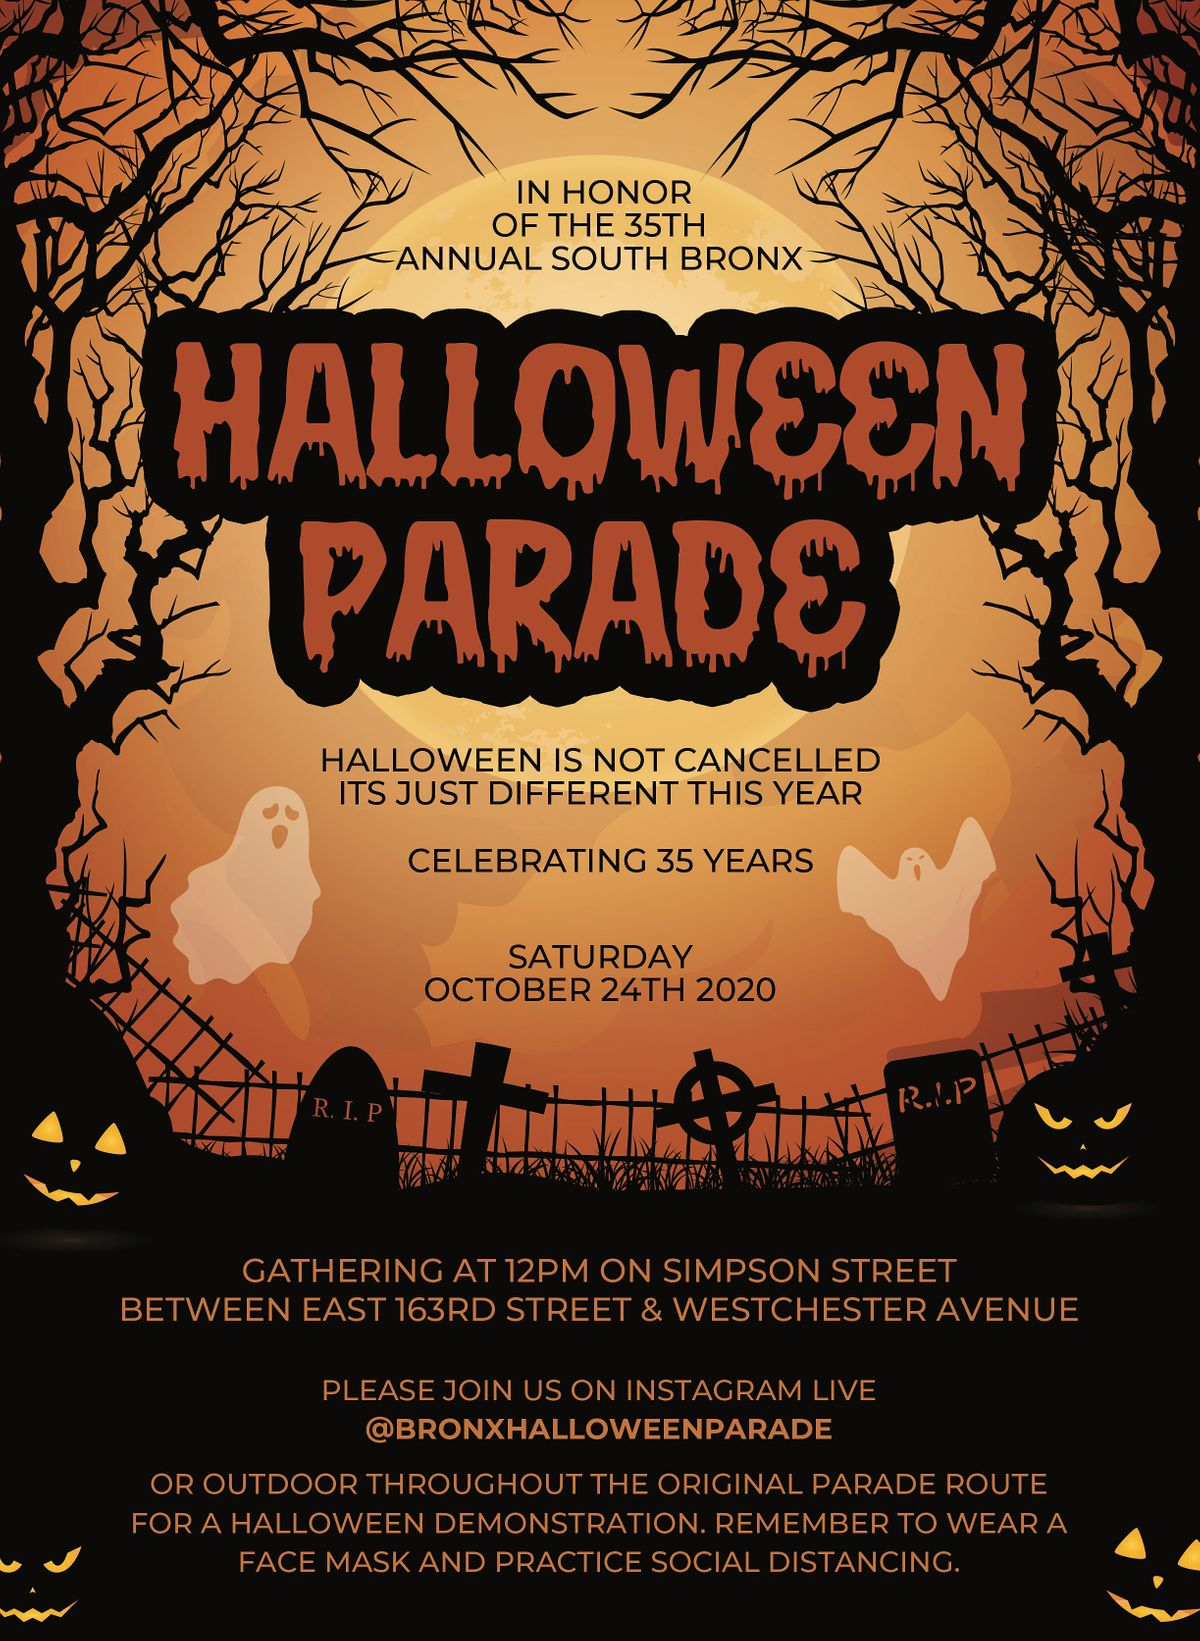 Westchester Halloween Parade 2020 When 35th Annual South Bronx Halloween Parade 2020, Simpson Street